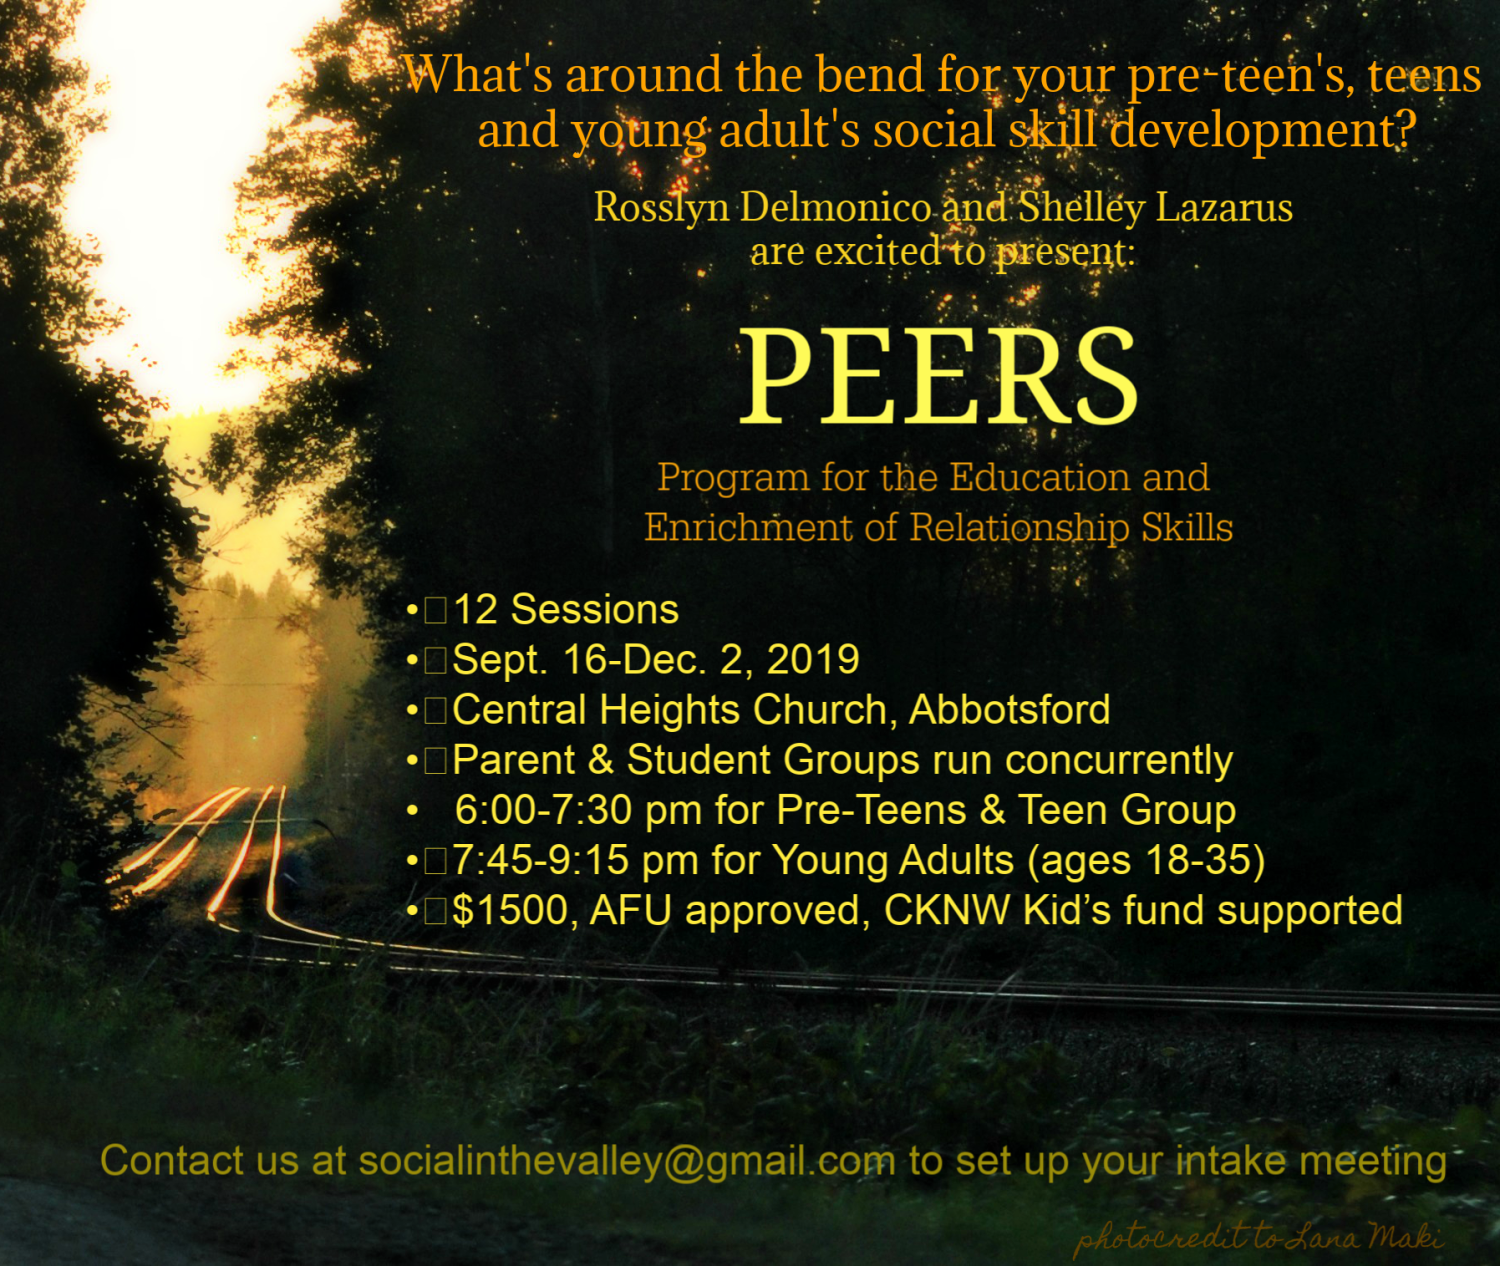 PEERS© in the Valley, Pre-teens &Teens